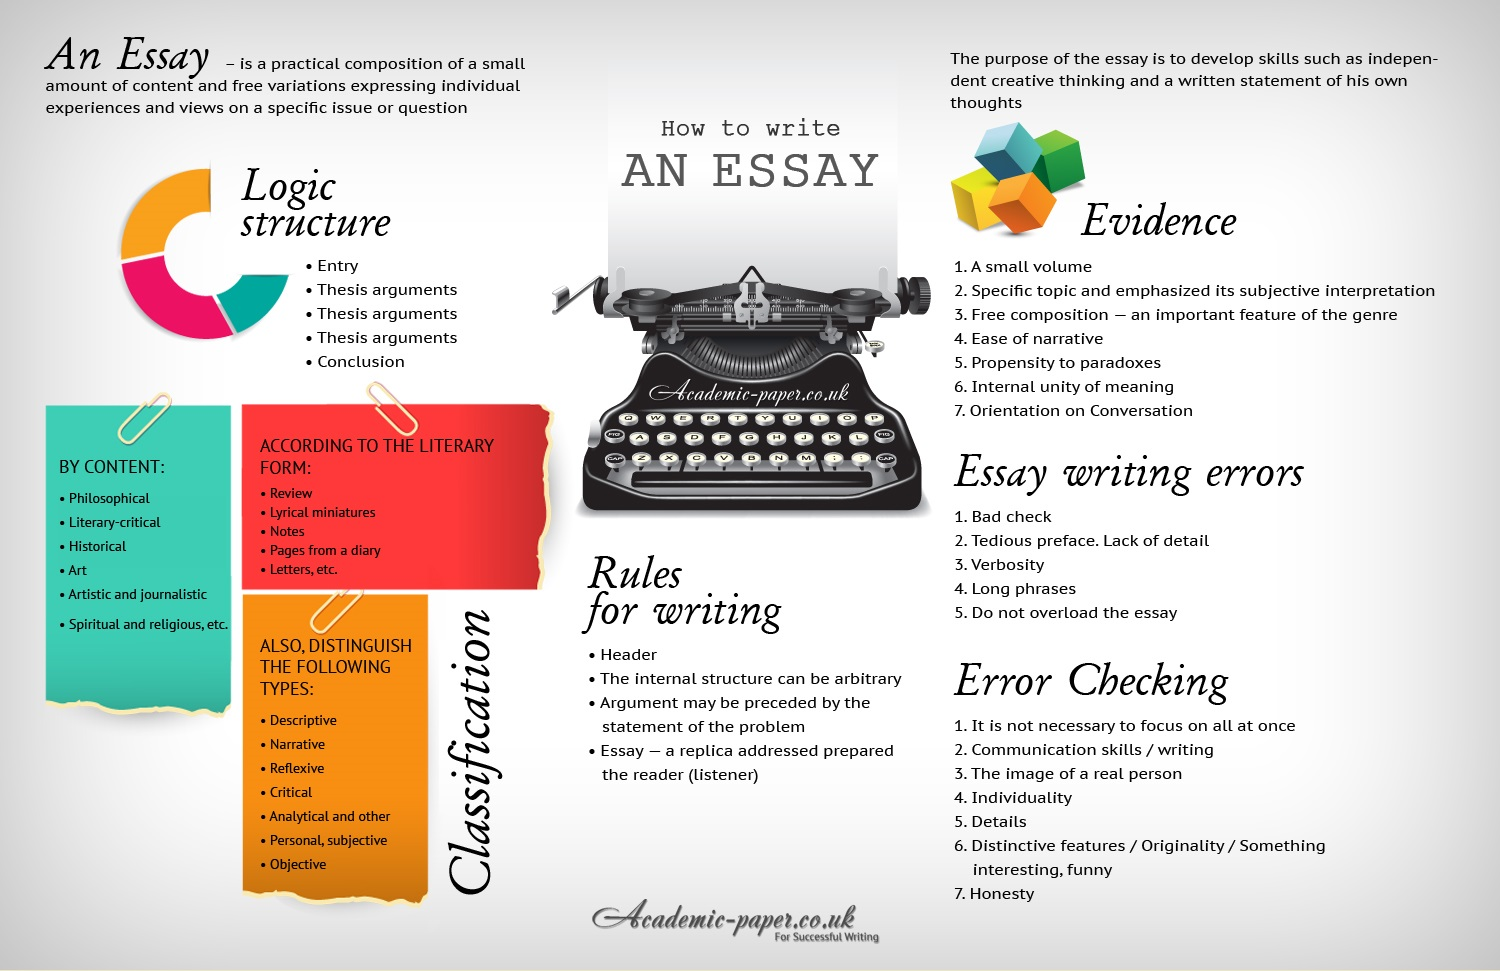 how to write an essay academic paper blog prewriting part introduction